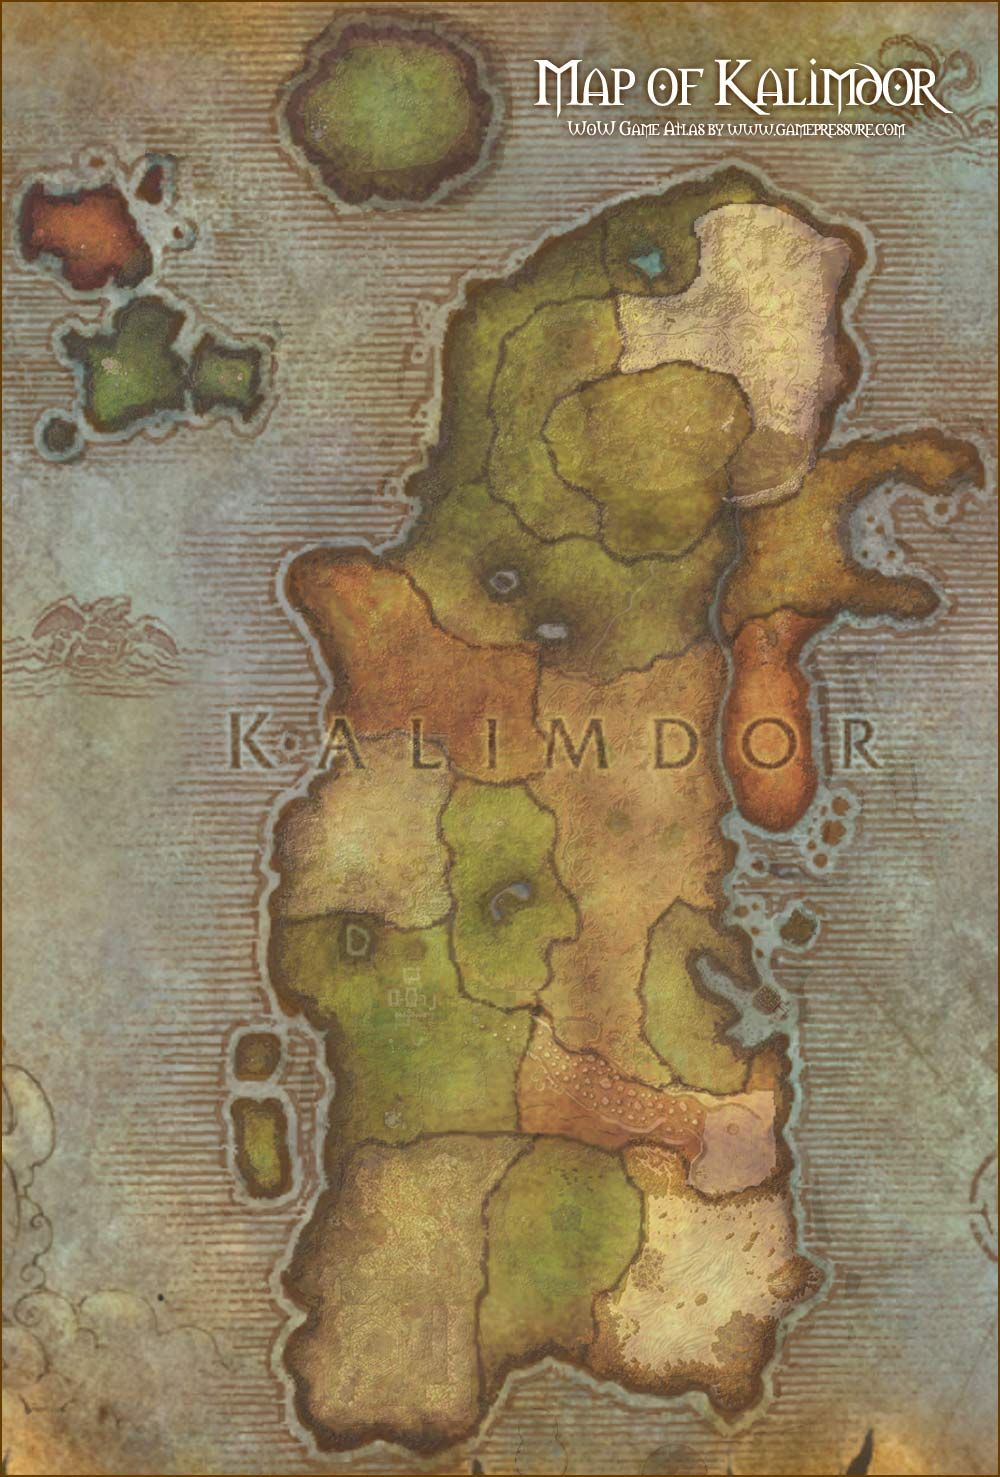 Map of kalimdor world of warcraft map of kalimdor world of warcraft gumiabroncs Images